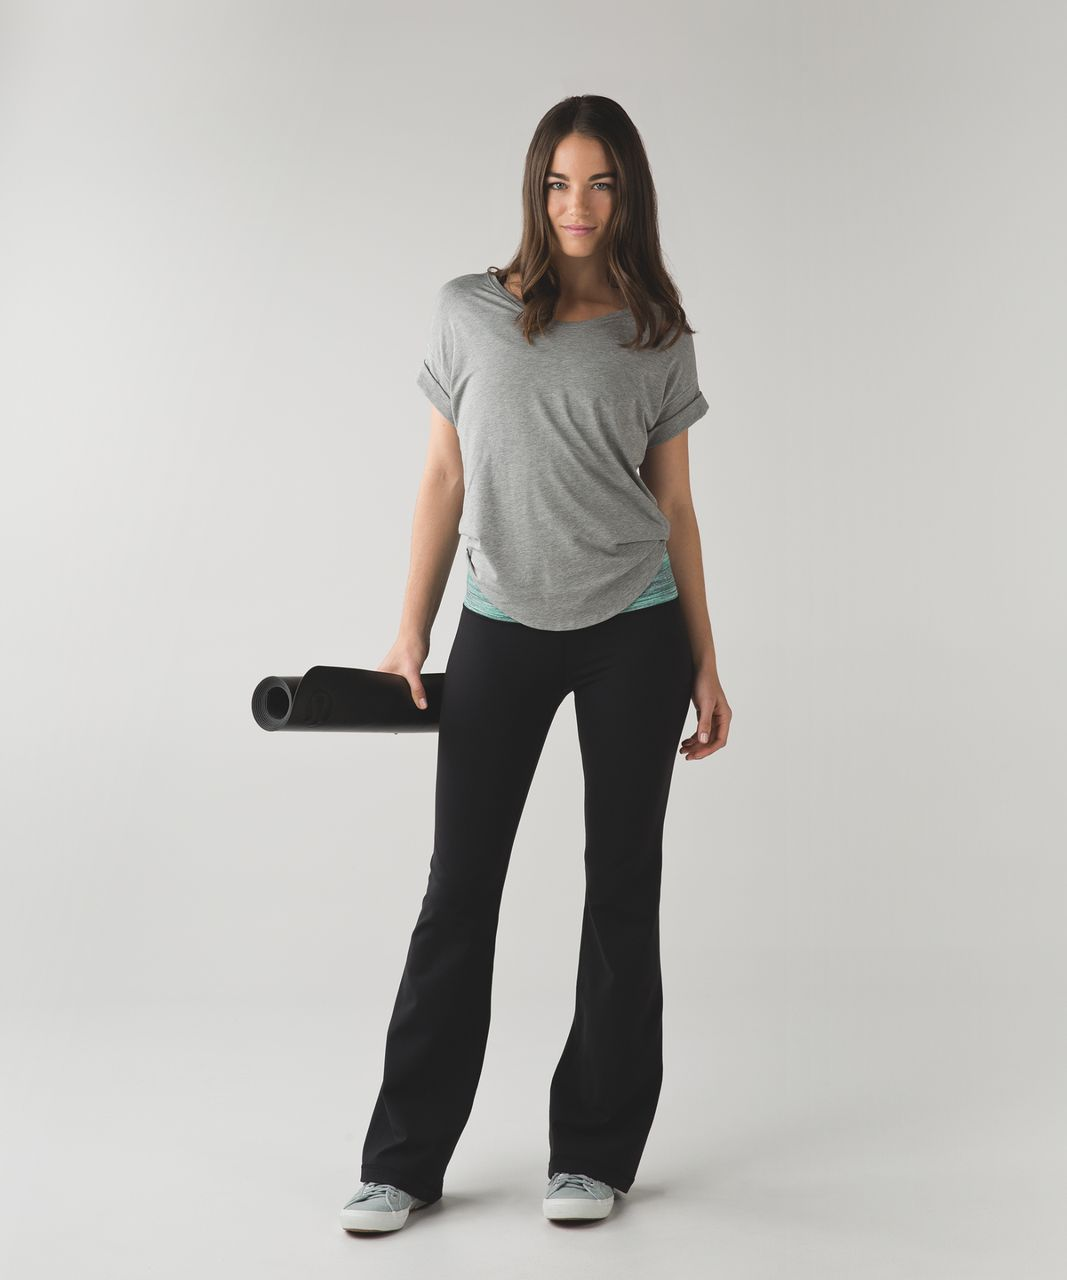 Lululemon Groove Pant III (Regular) *Full-On Luon - Black / Space Dye Camo Forage Teal Black